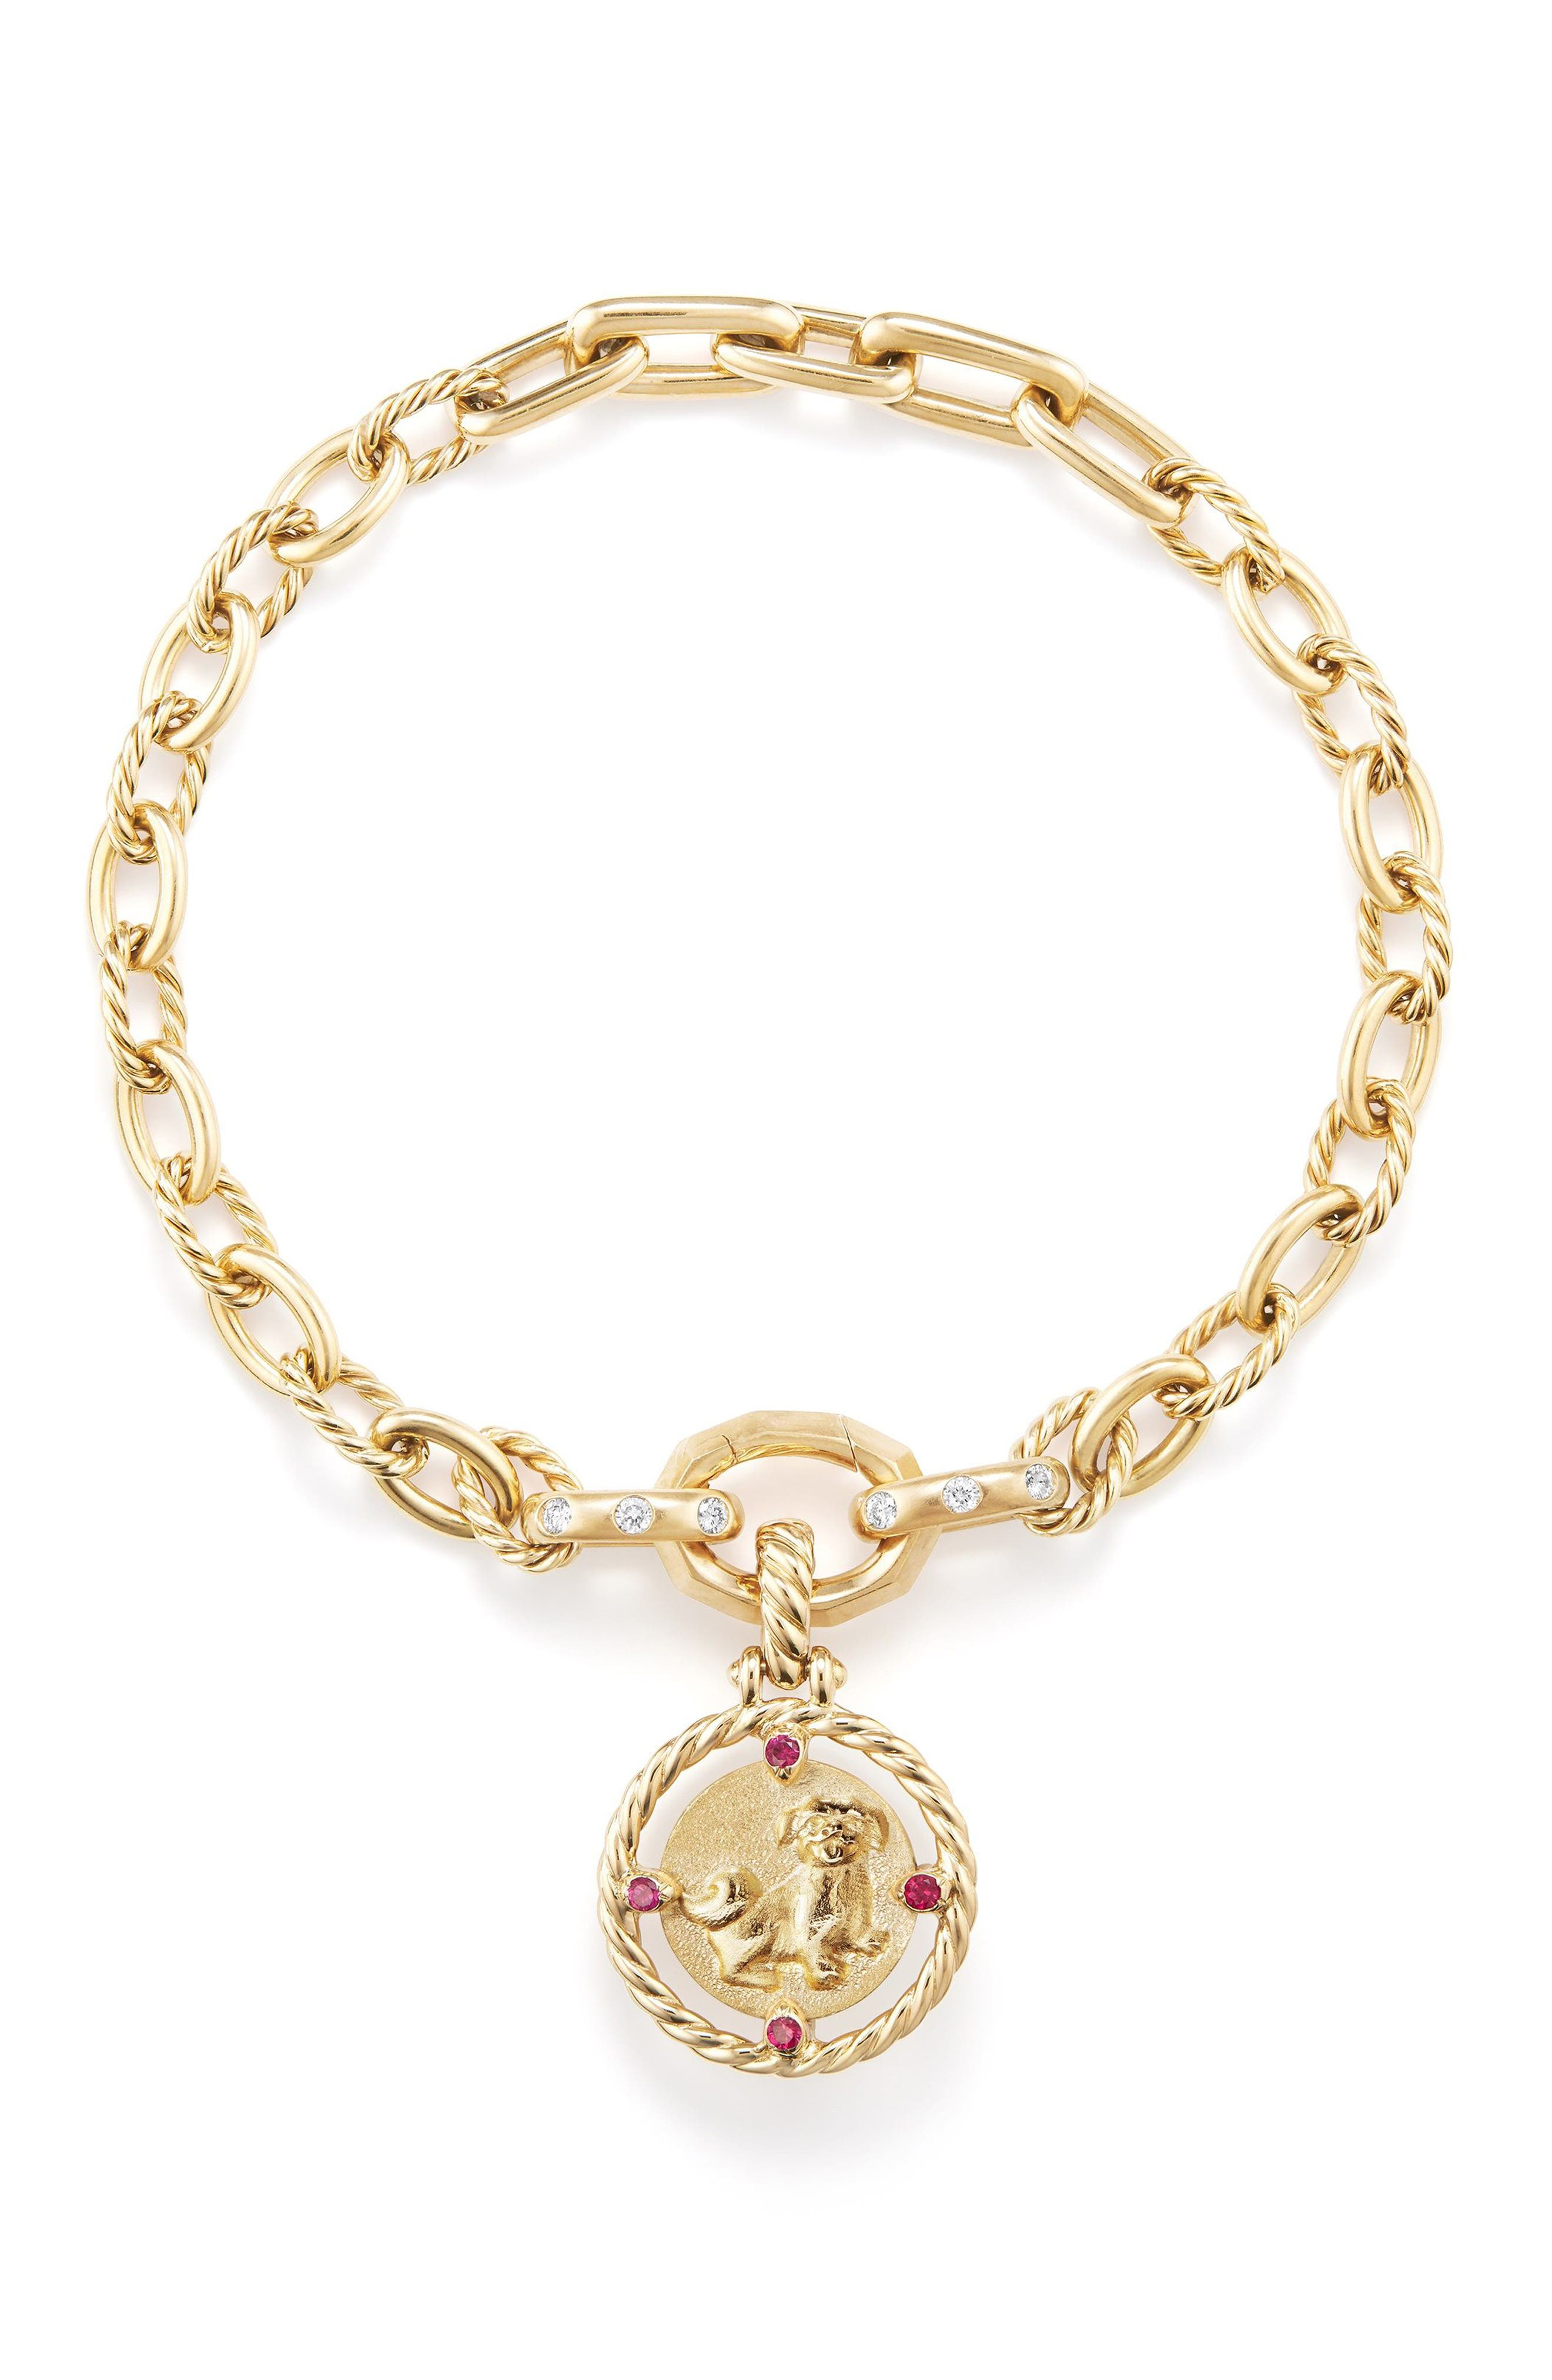 Lunar New Year Charm in 18K Gold with Rubies,                             Alternate thumbnail 3, color,                             YELLOW GOLD/ RUBY